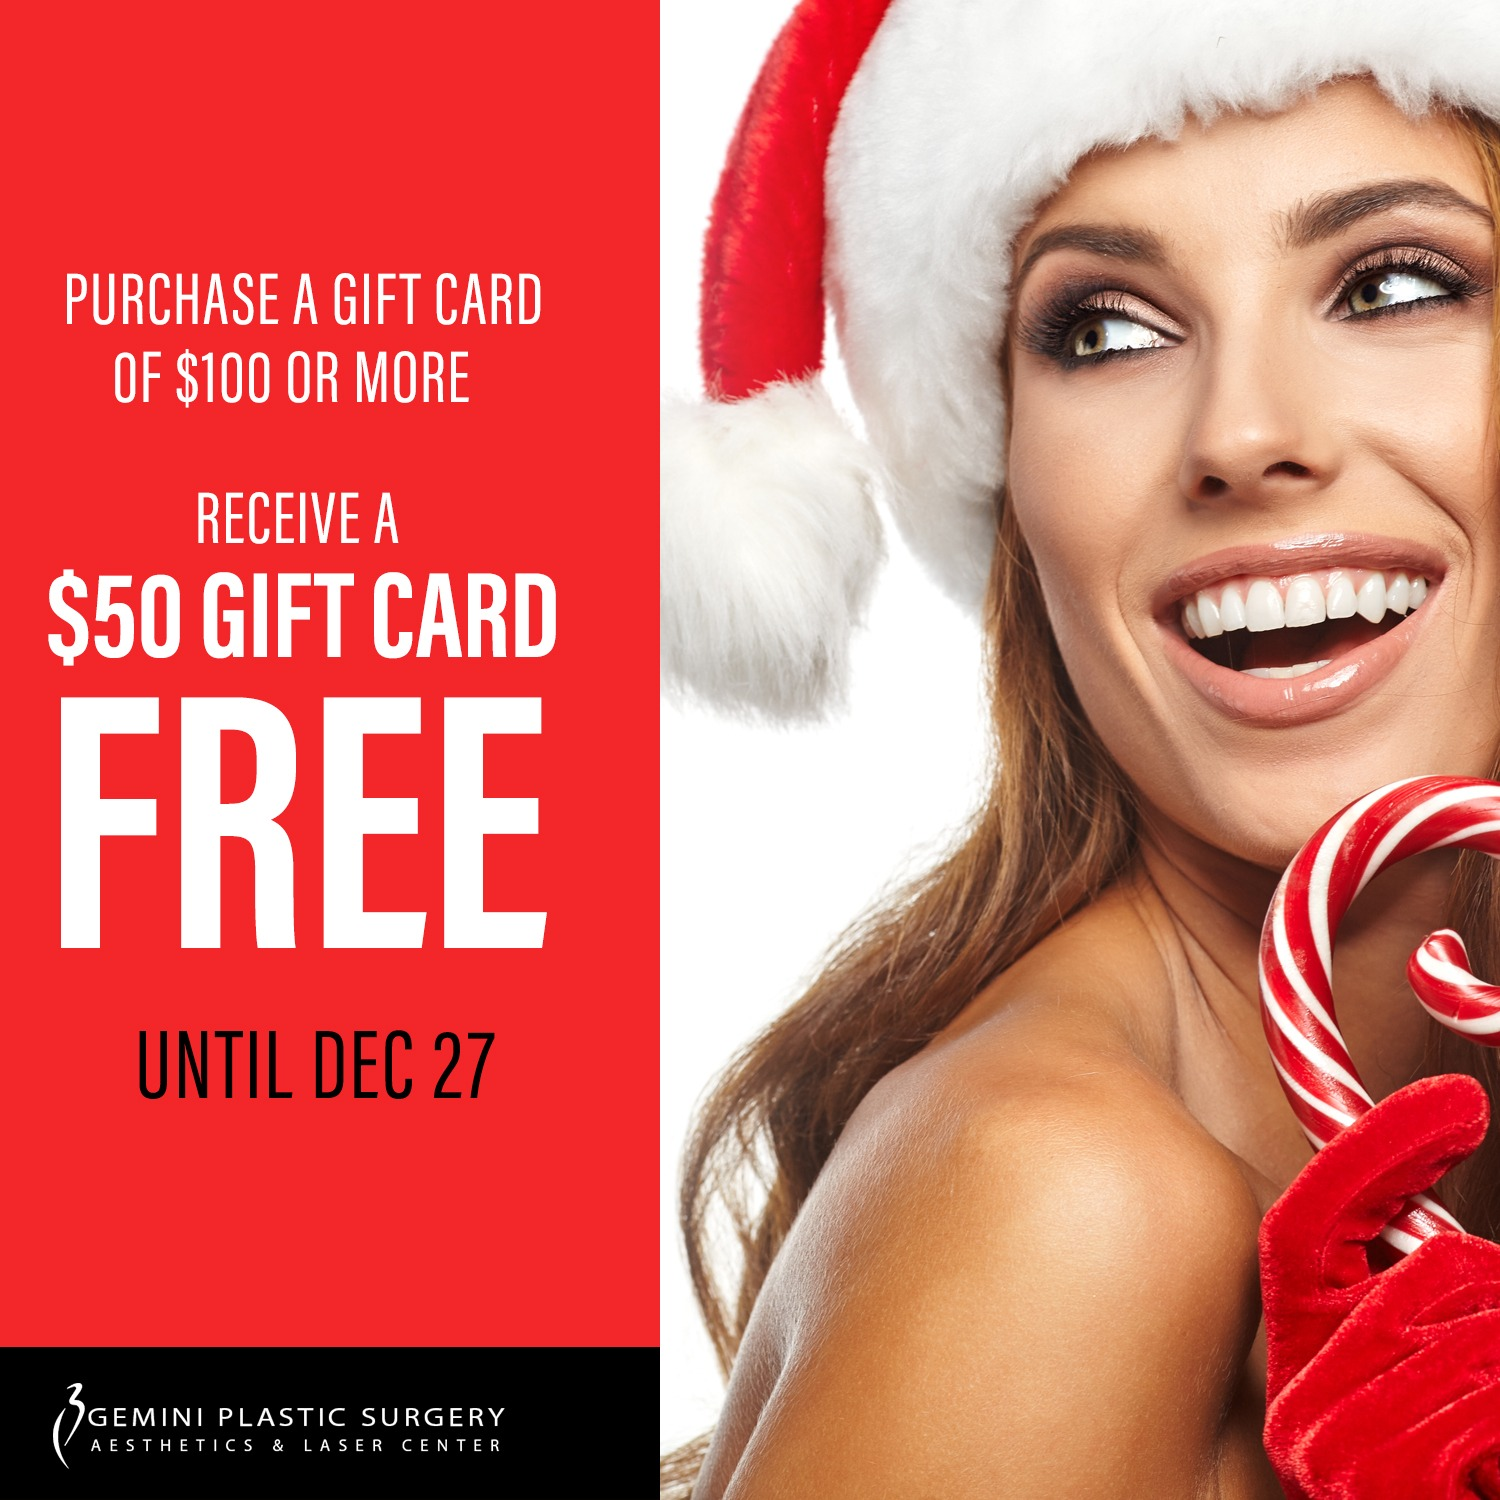 Purchase a gift card of $100 or more, Receive a $50 gift card for free at Gemini Plastic Surgery in Rancho Cucamonga